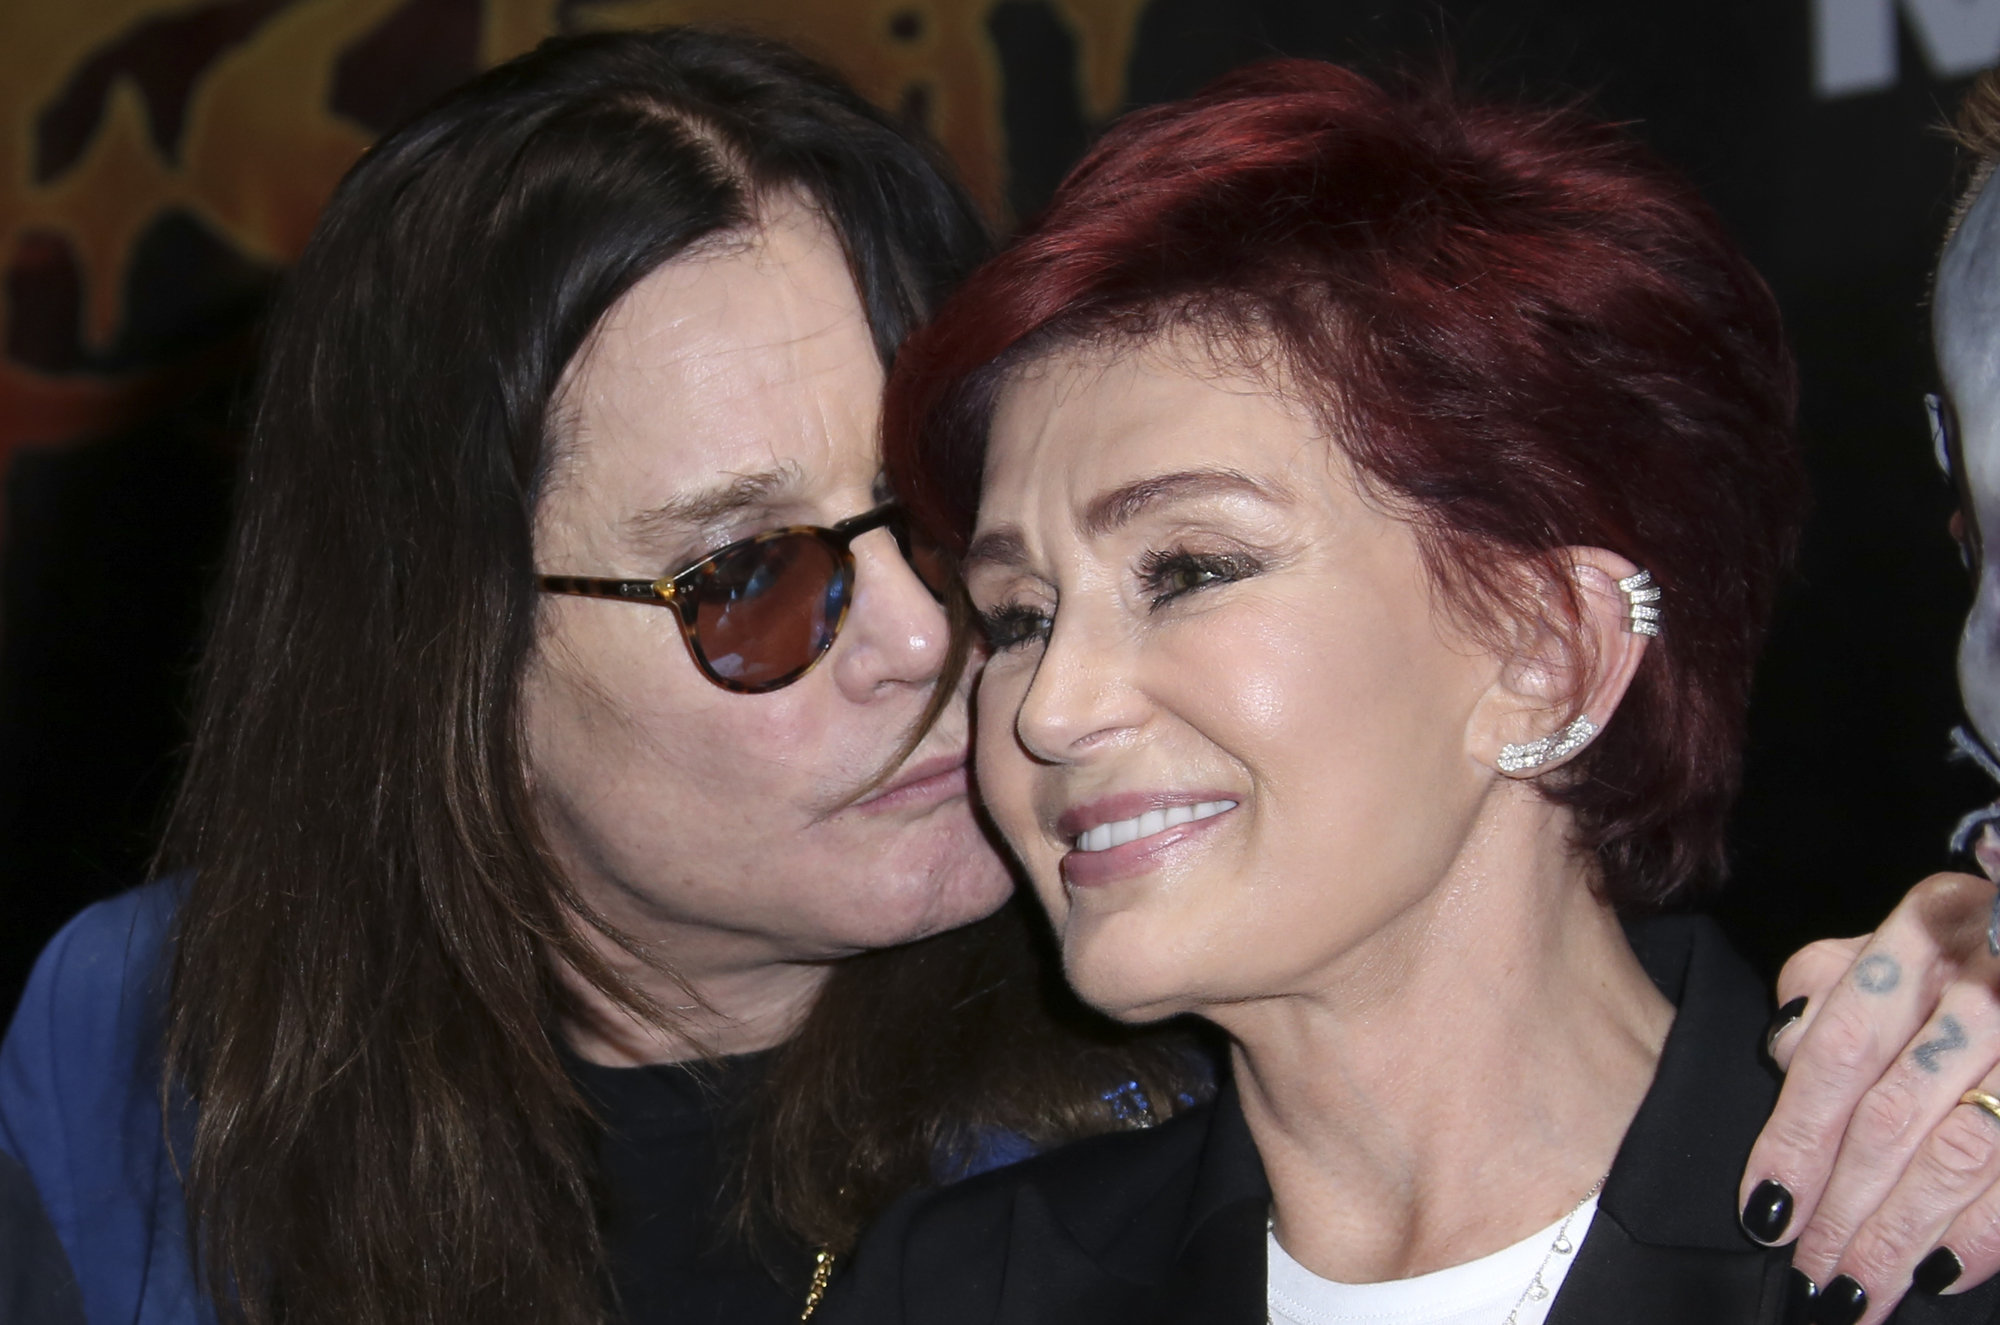 Sharon Osbourne Manages to Crack a Joke About Husband Ozzy's Sex Addiction | The Stir